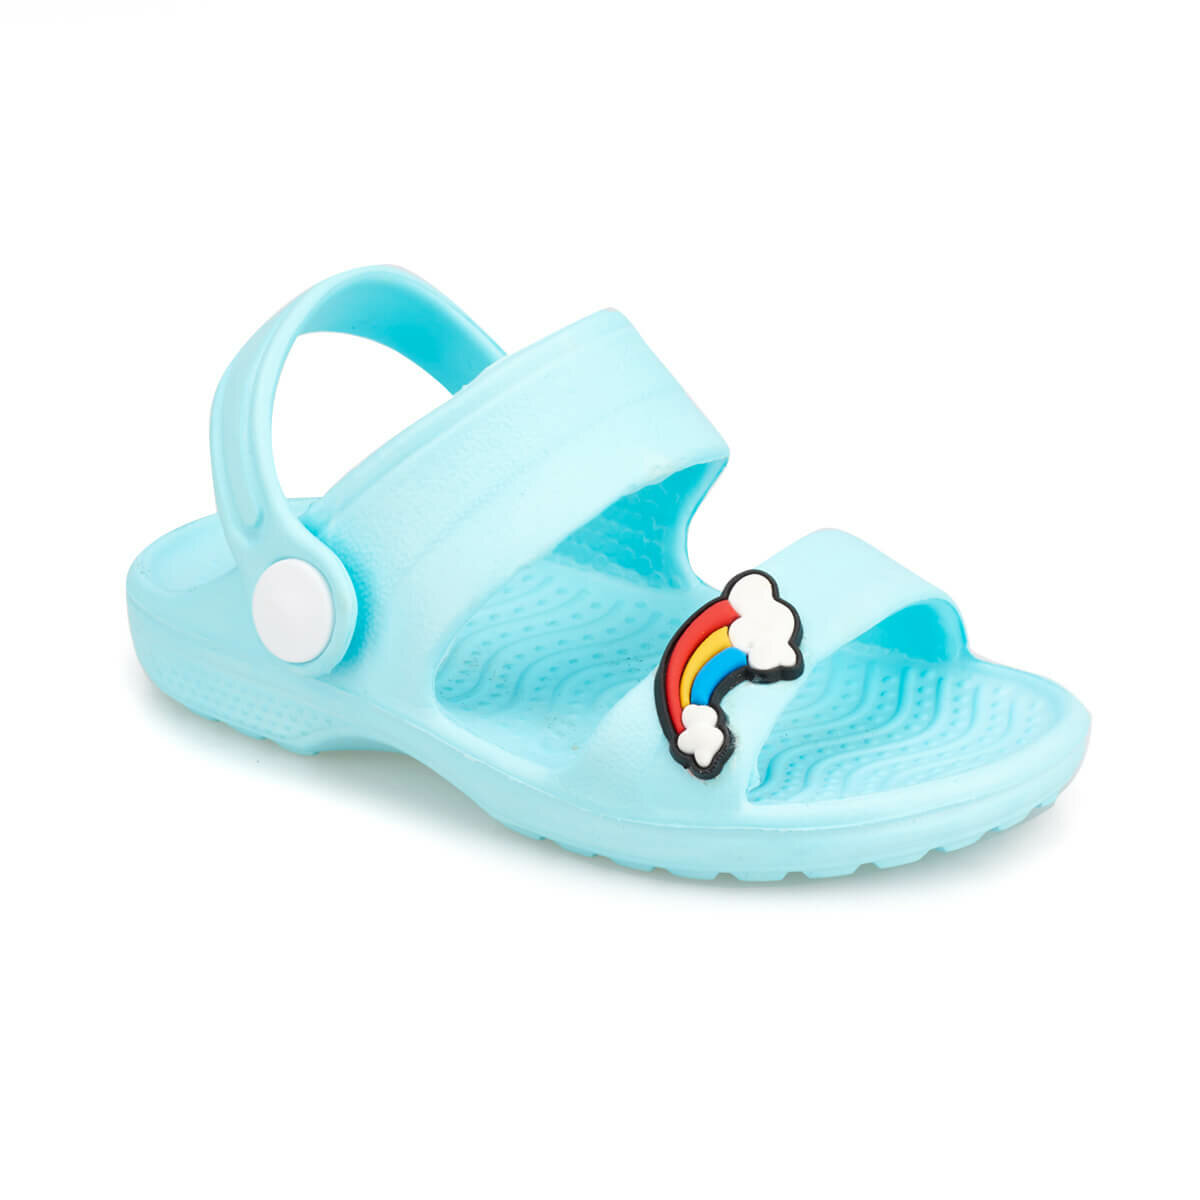 FLO Girl Sandals Light Blue Fashion Rainbow Details Slippers Durable Breathable Female Child Sea Sport Shoes Женские сандалии TEGY KINETIX